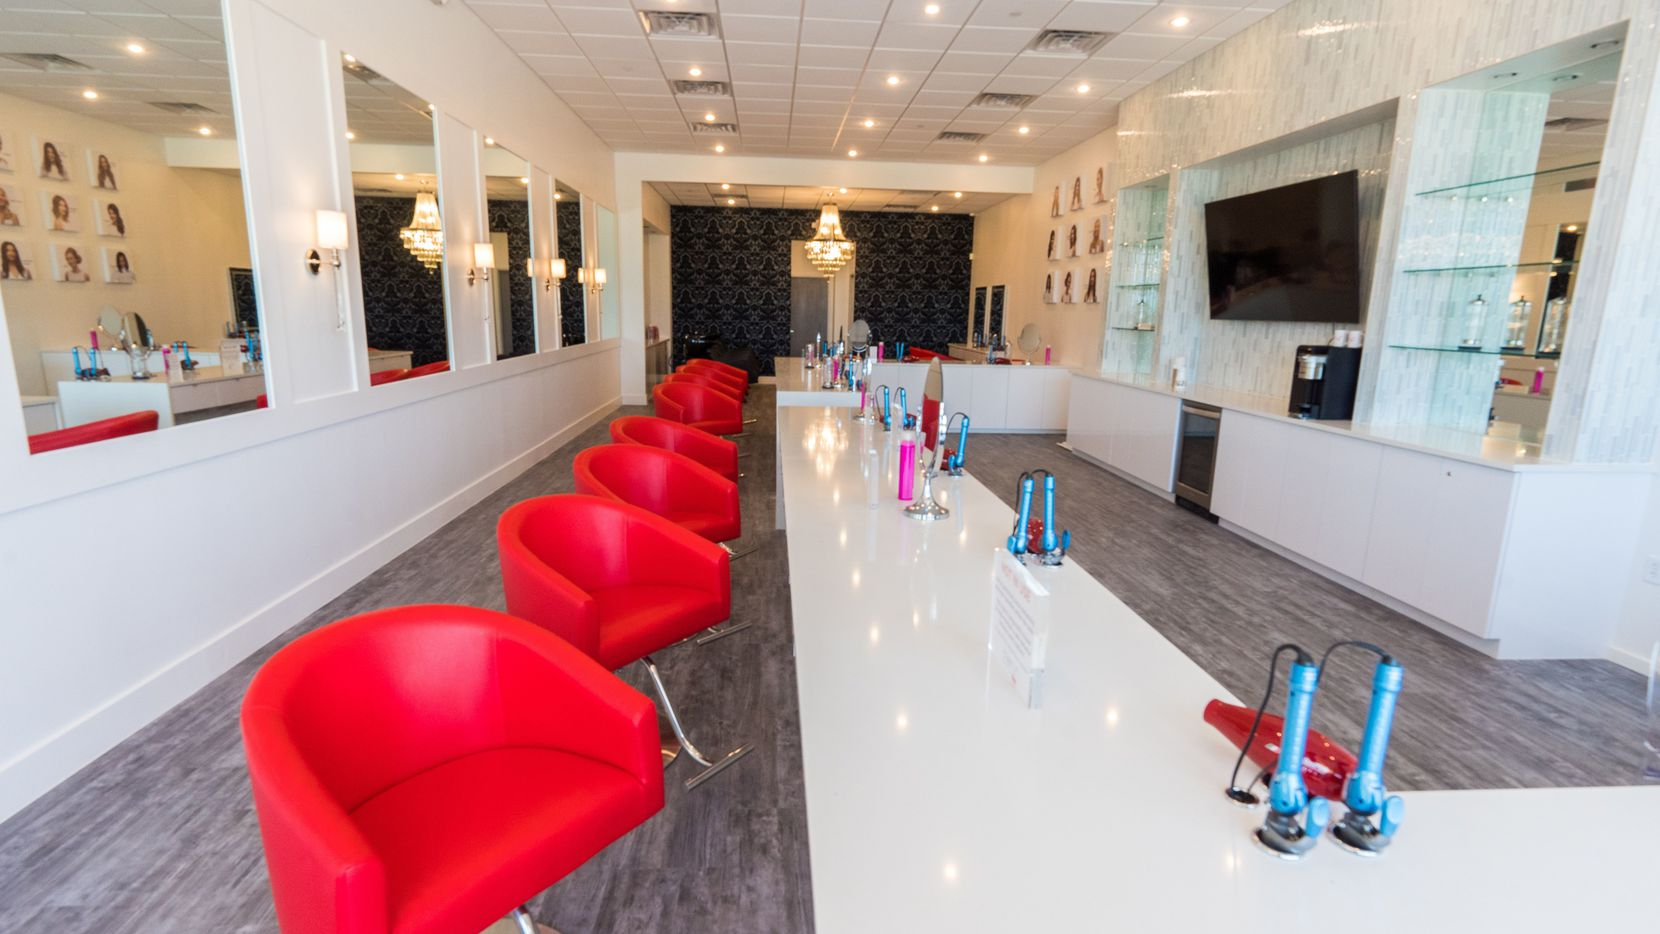 Cherry Blow Dry Bar Arlington will open in late July and offer blowouts, hair extensions, hair trimming, makeup applications, lash extensions and scalp massages.